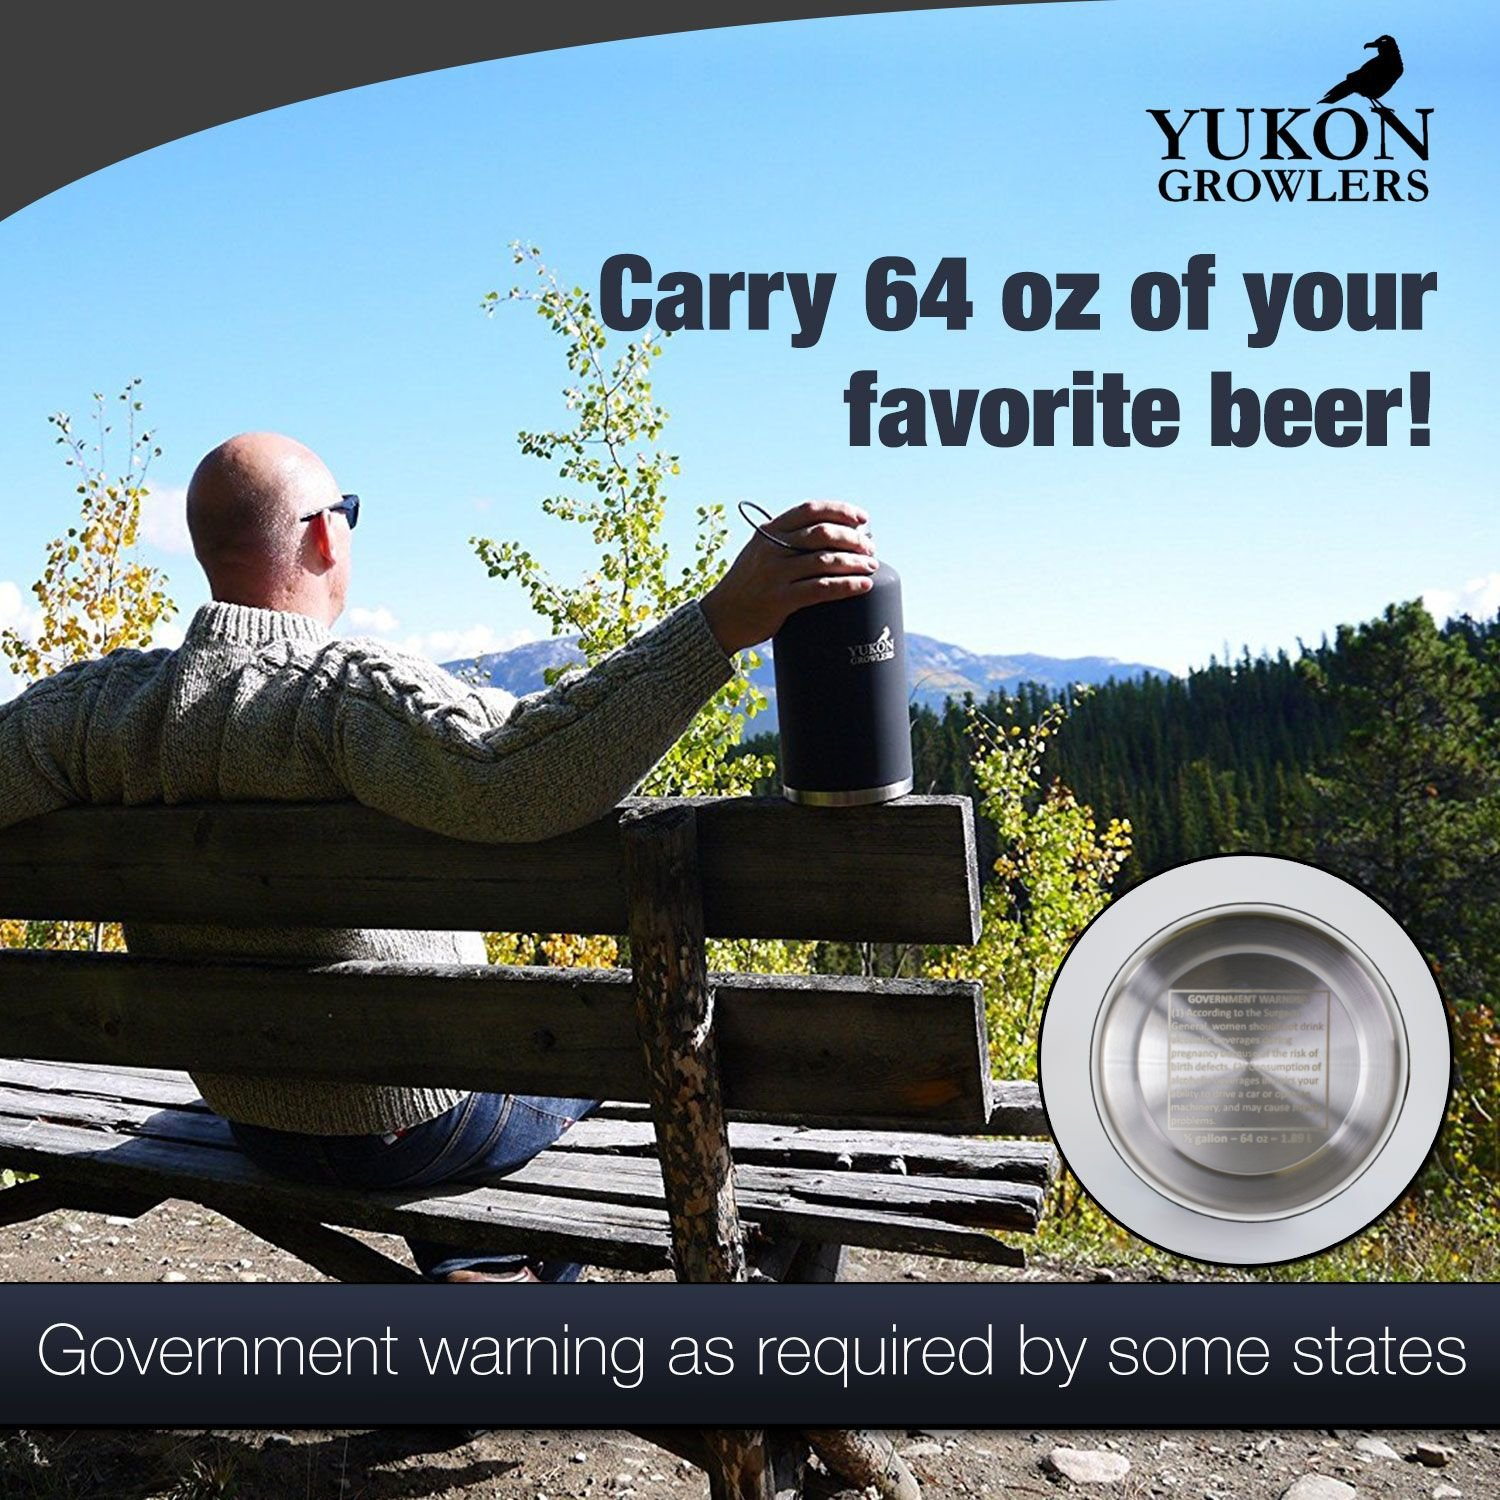 Yukon Growlers Insulated Beer Growler - Keep Your Beer Cold and Carbonated for 24 Hours - Stainless Steel Vacuum Water Bottle with Carrying Case Also Keeps Coffee Hot - Improved Lid - 64 oz by Yukon Growlers (Image #6)